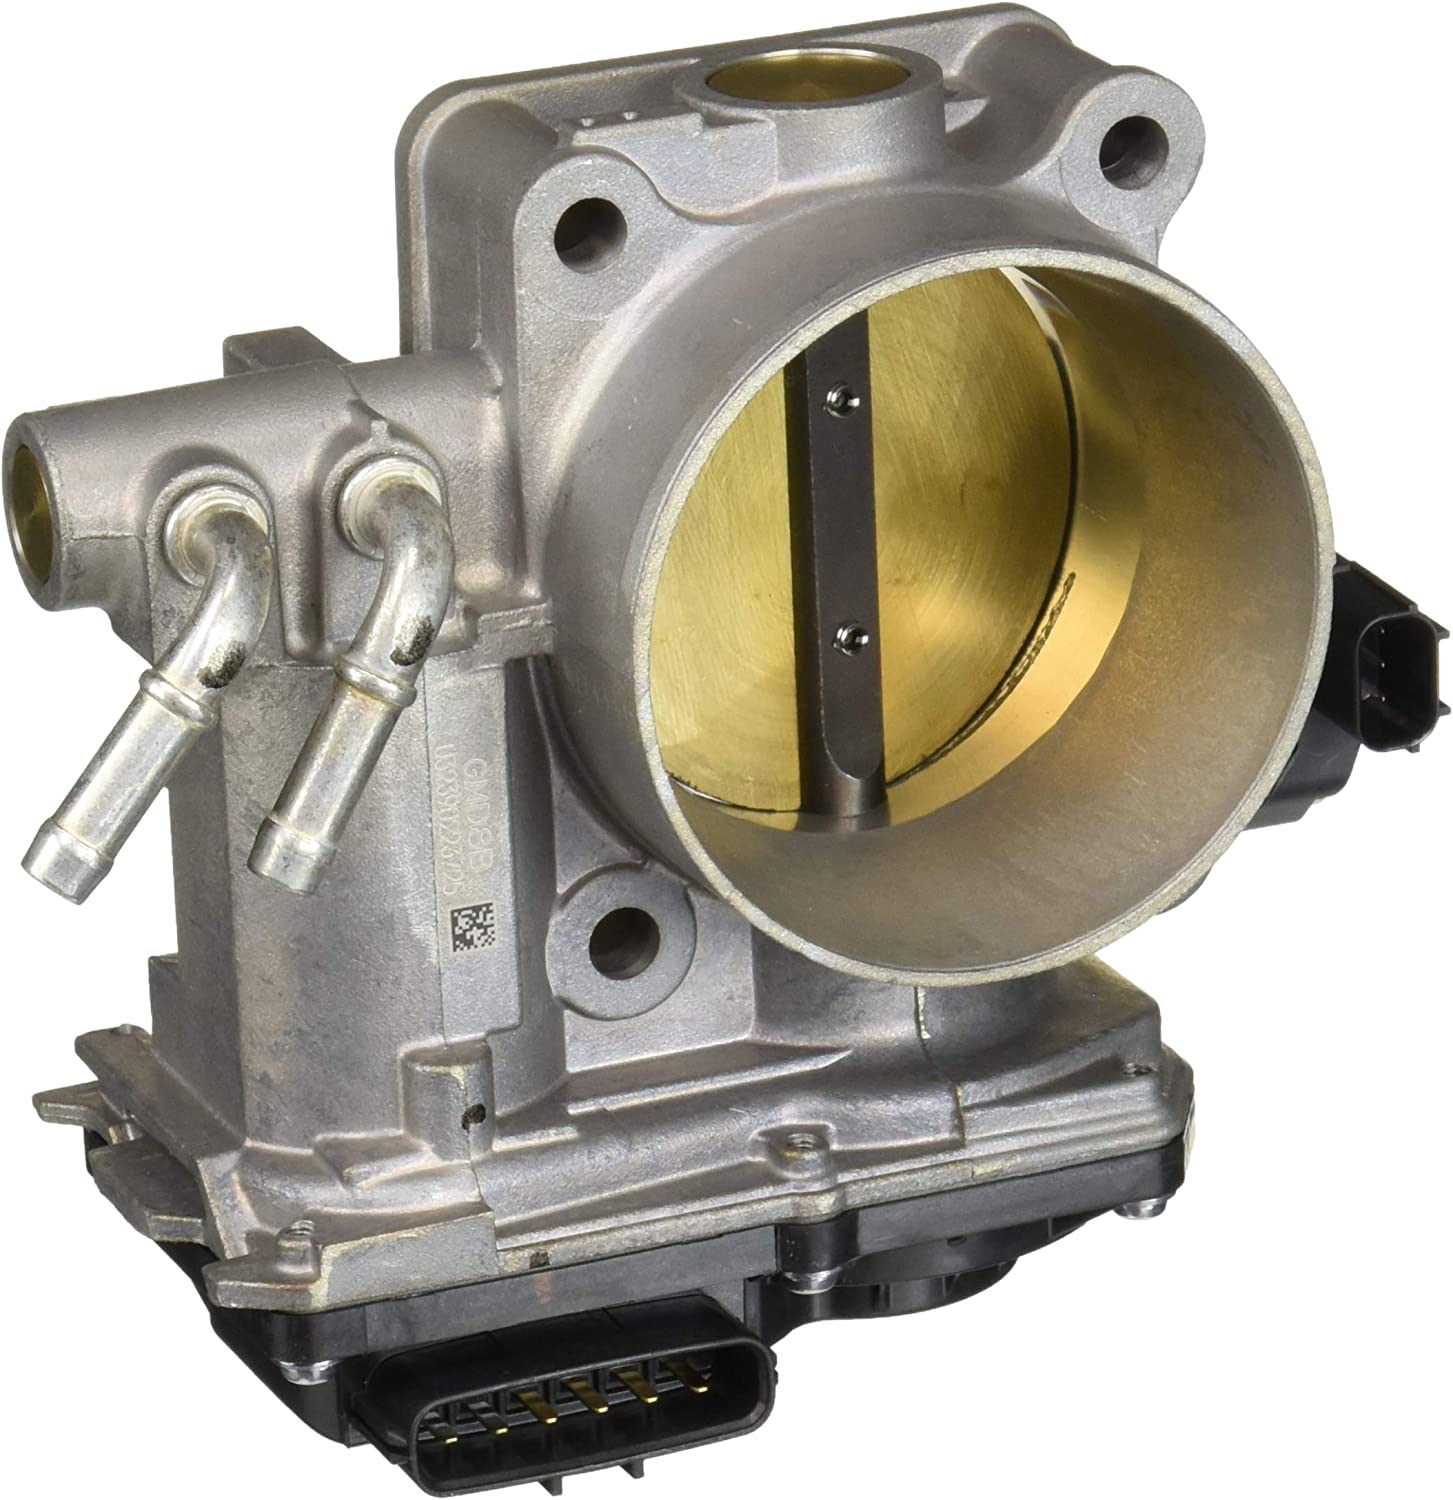 Acura 16400-Rye-A11 Fuel Injection Throttle Body